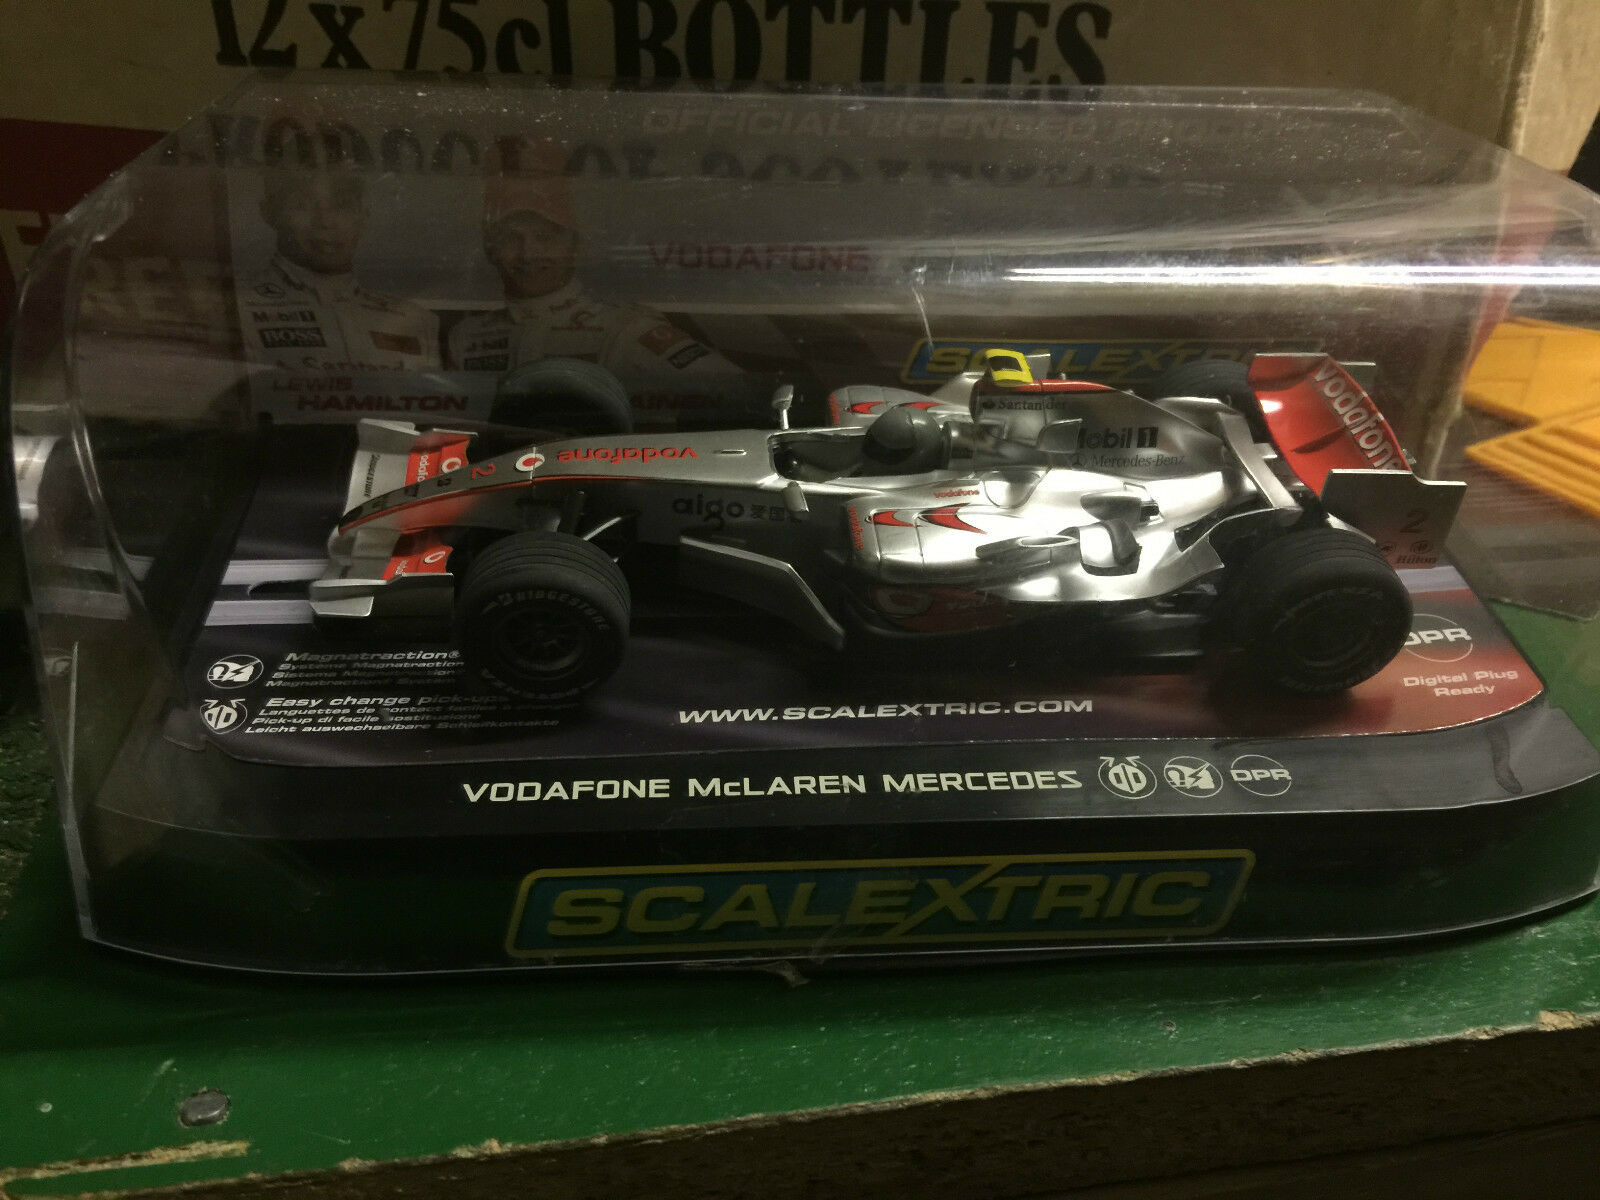 MINT BOXED SCALEXTRIC MCLAREN MP4-21 HEIKKI KOVALAINEN NO 2 REF C2986